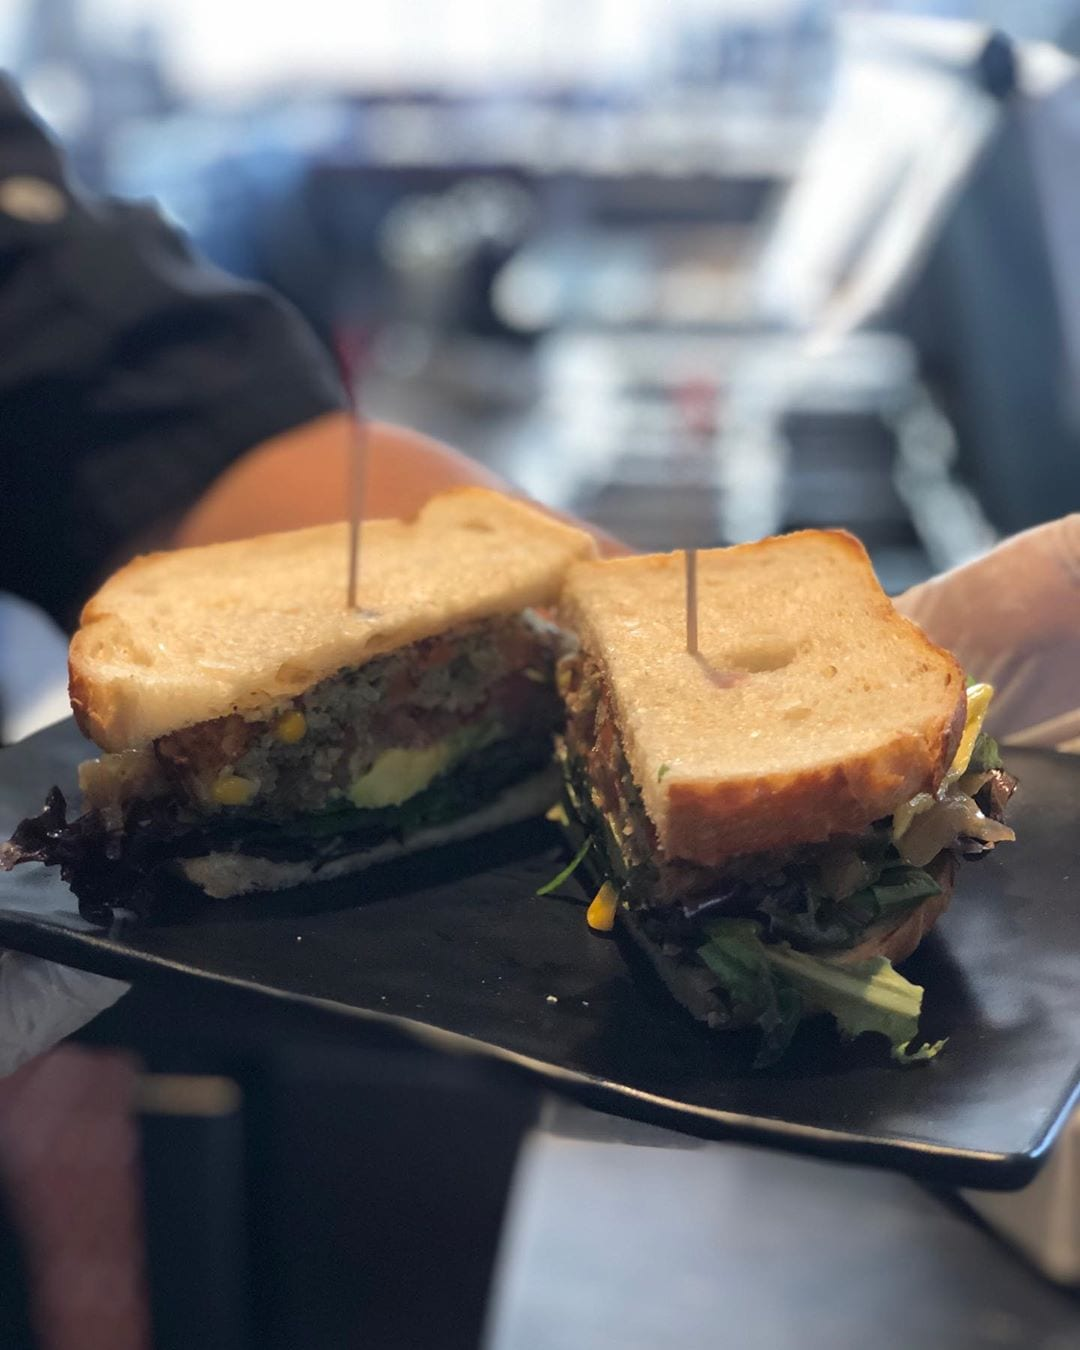 Looking for something light and healthy for lunch?! Try The Vegan Sandwich made with organic mixed greens, tomato, avocado and garlic aioli at @fireandbrew located at our Yard. #hotelzephyrsf #lunchideas #veganfood